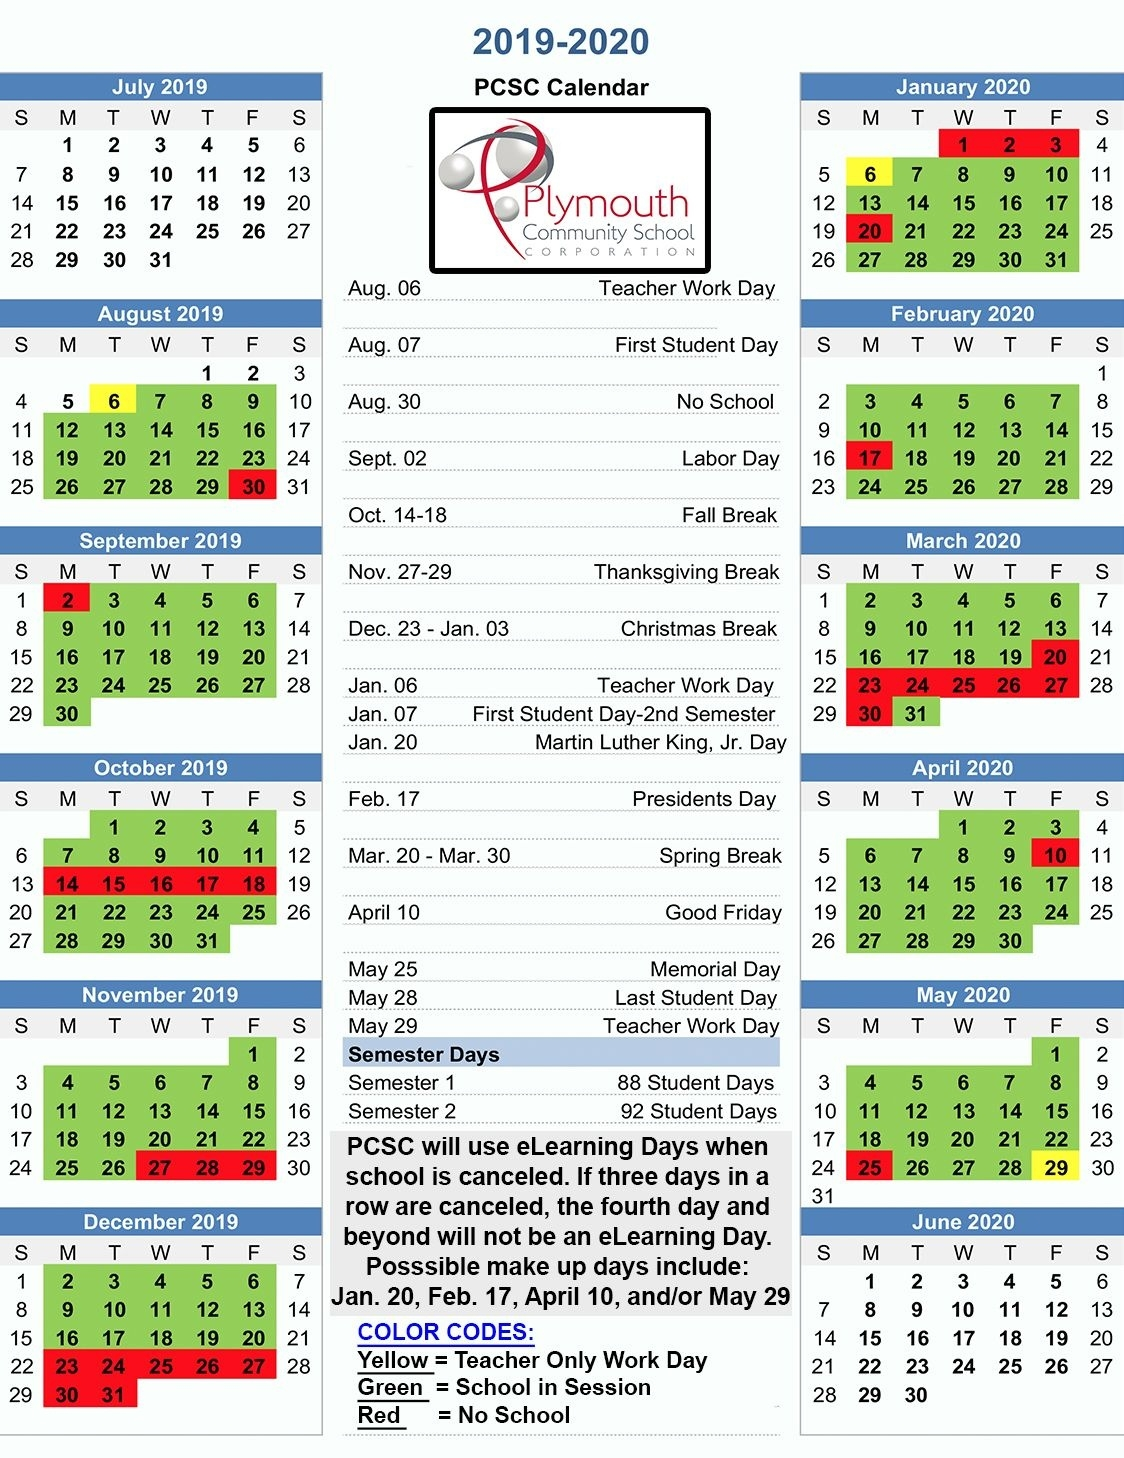 Download A Copy Of The Recently Approved 2019-2020 Pcsc Balanced_Calendar Of School Activities 2020